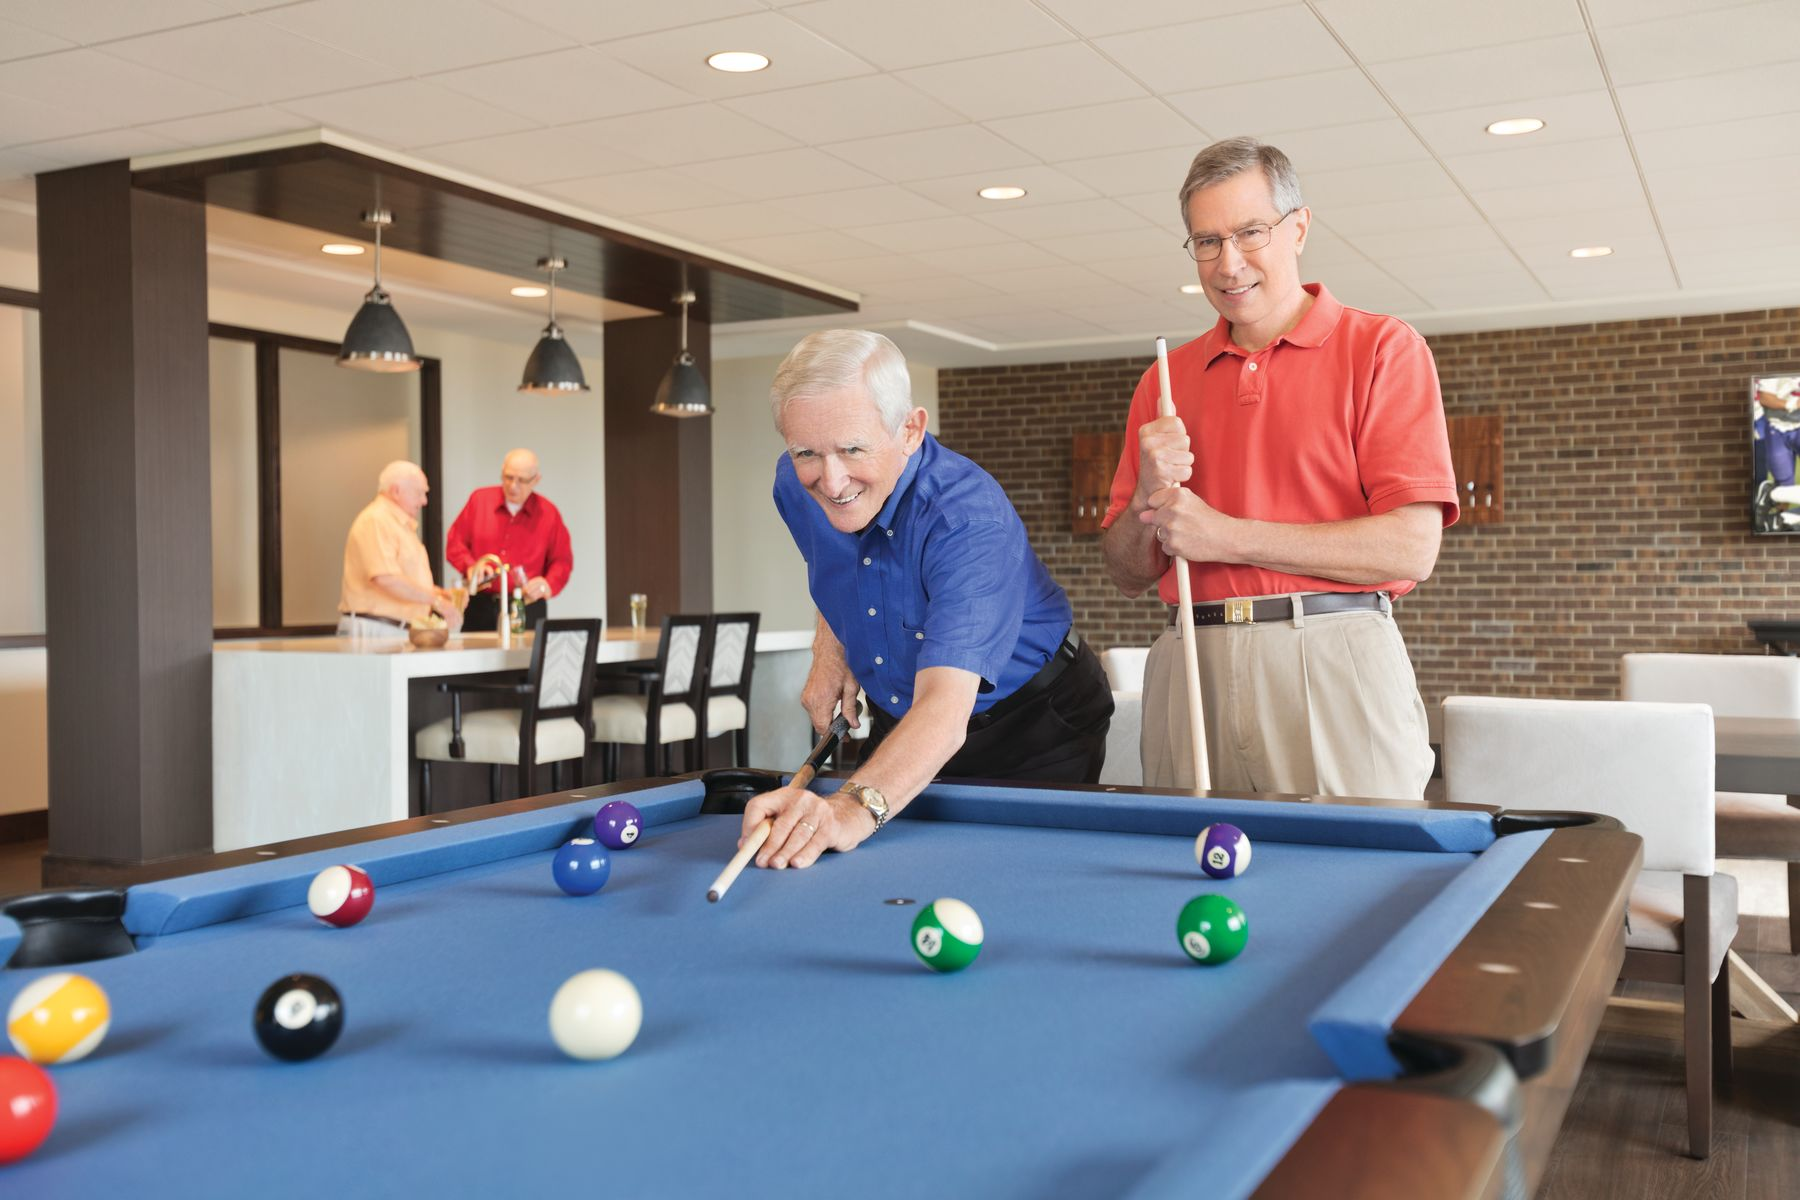 Residents shoot a game of pool in one of the club rooms at Ashby Ponds.